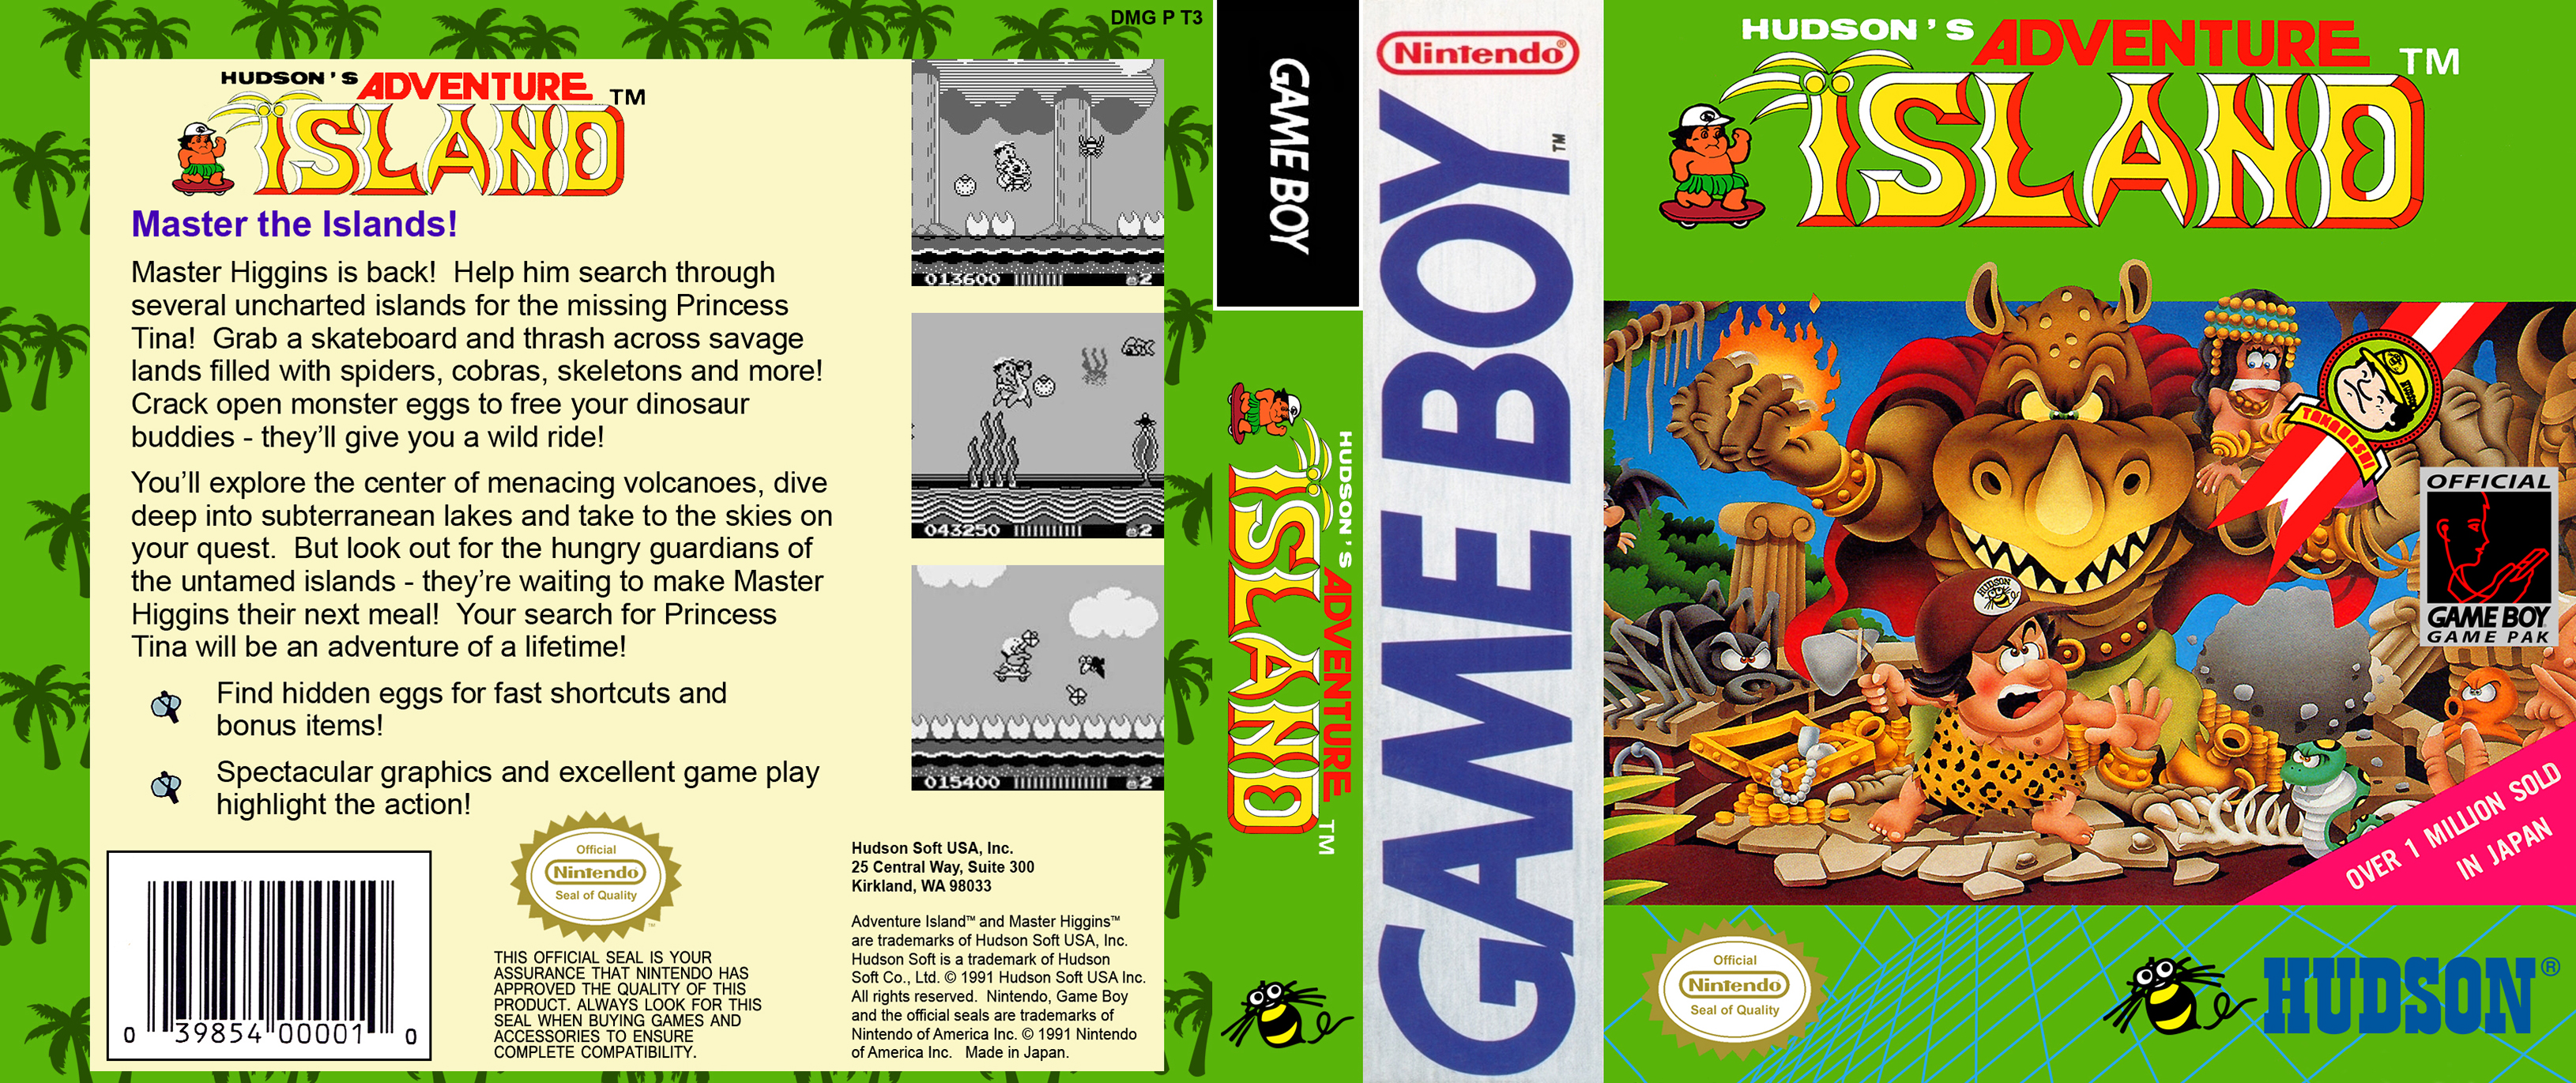 Adventure Island Gameboy Covers Cover Century Over 500 000 Album Art Covers For Free